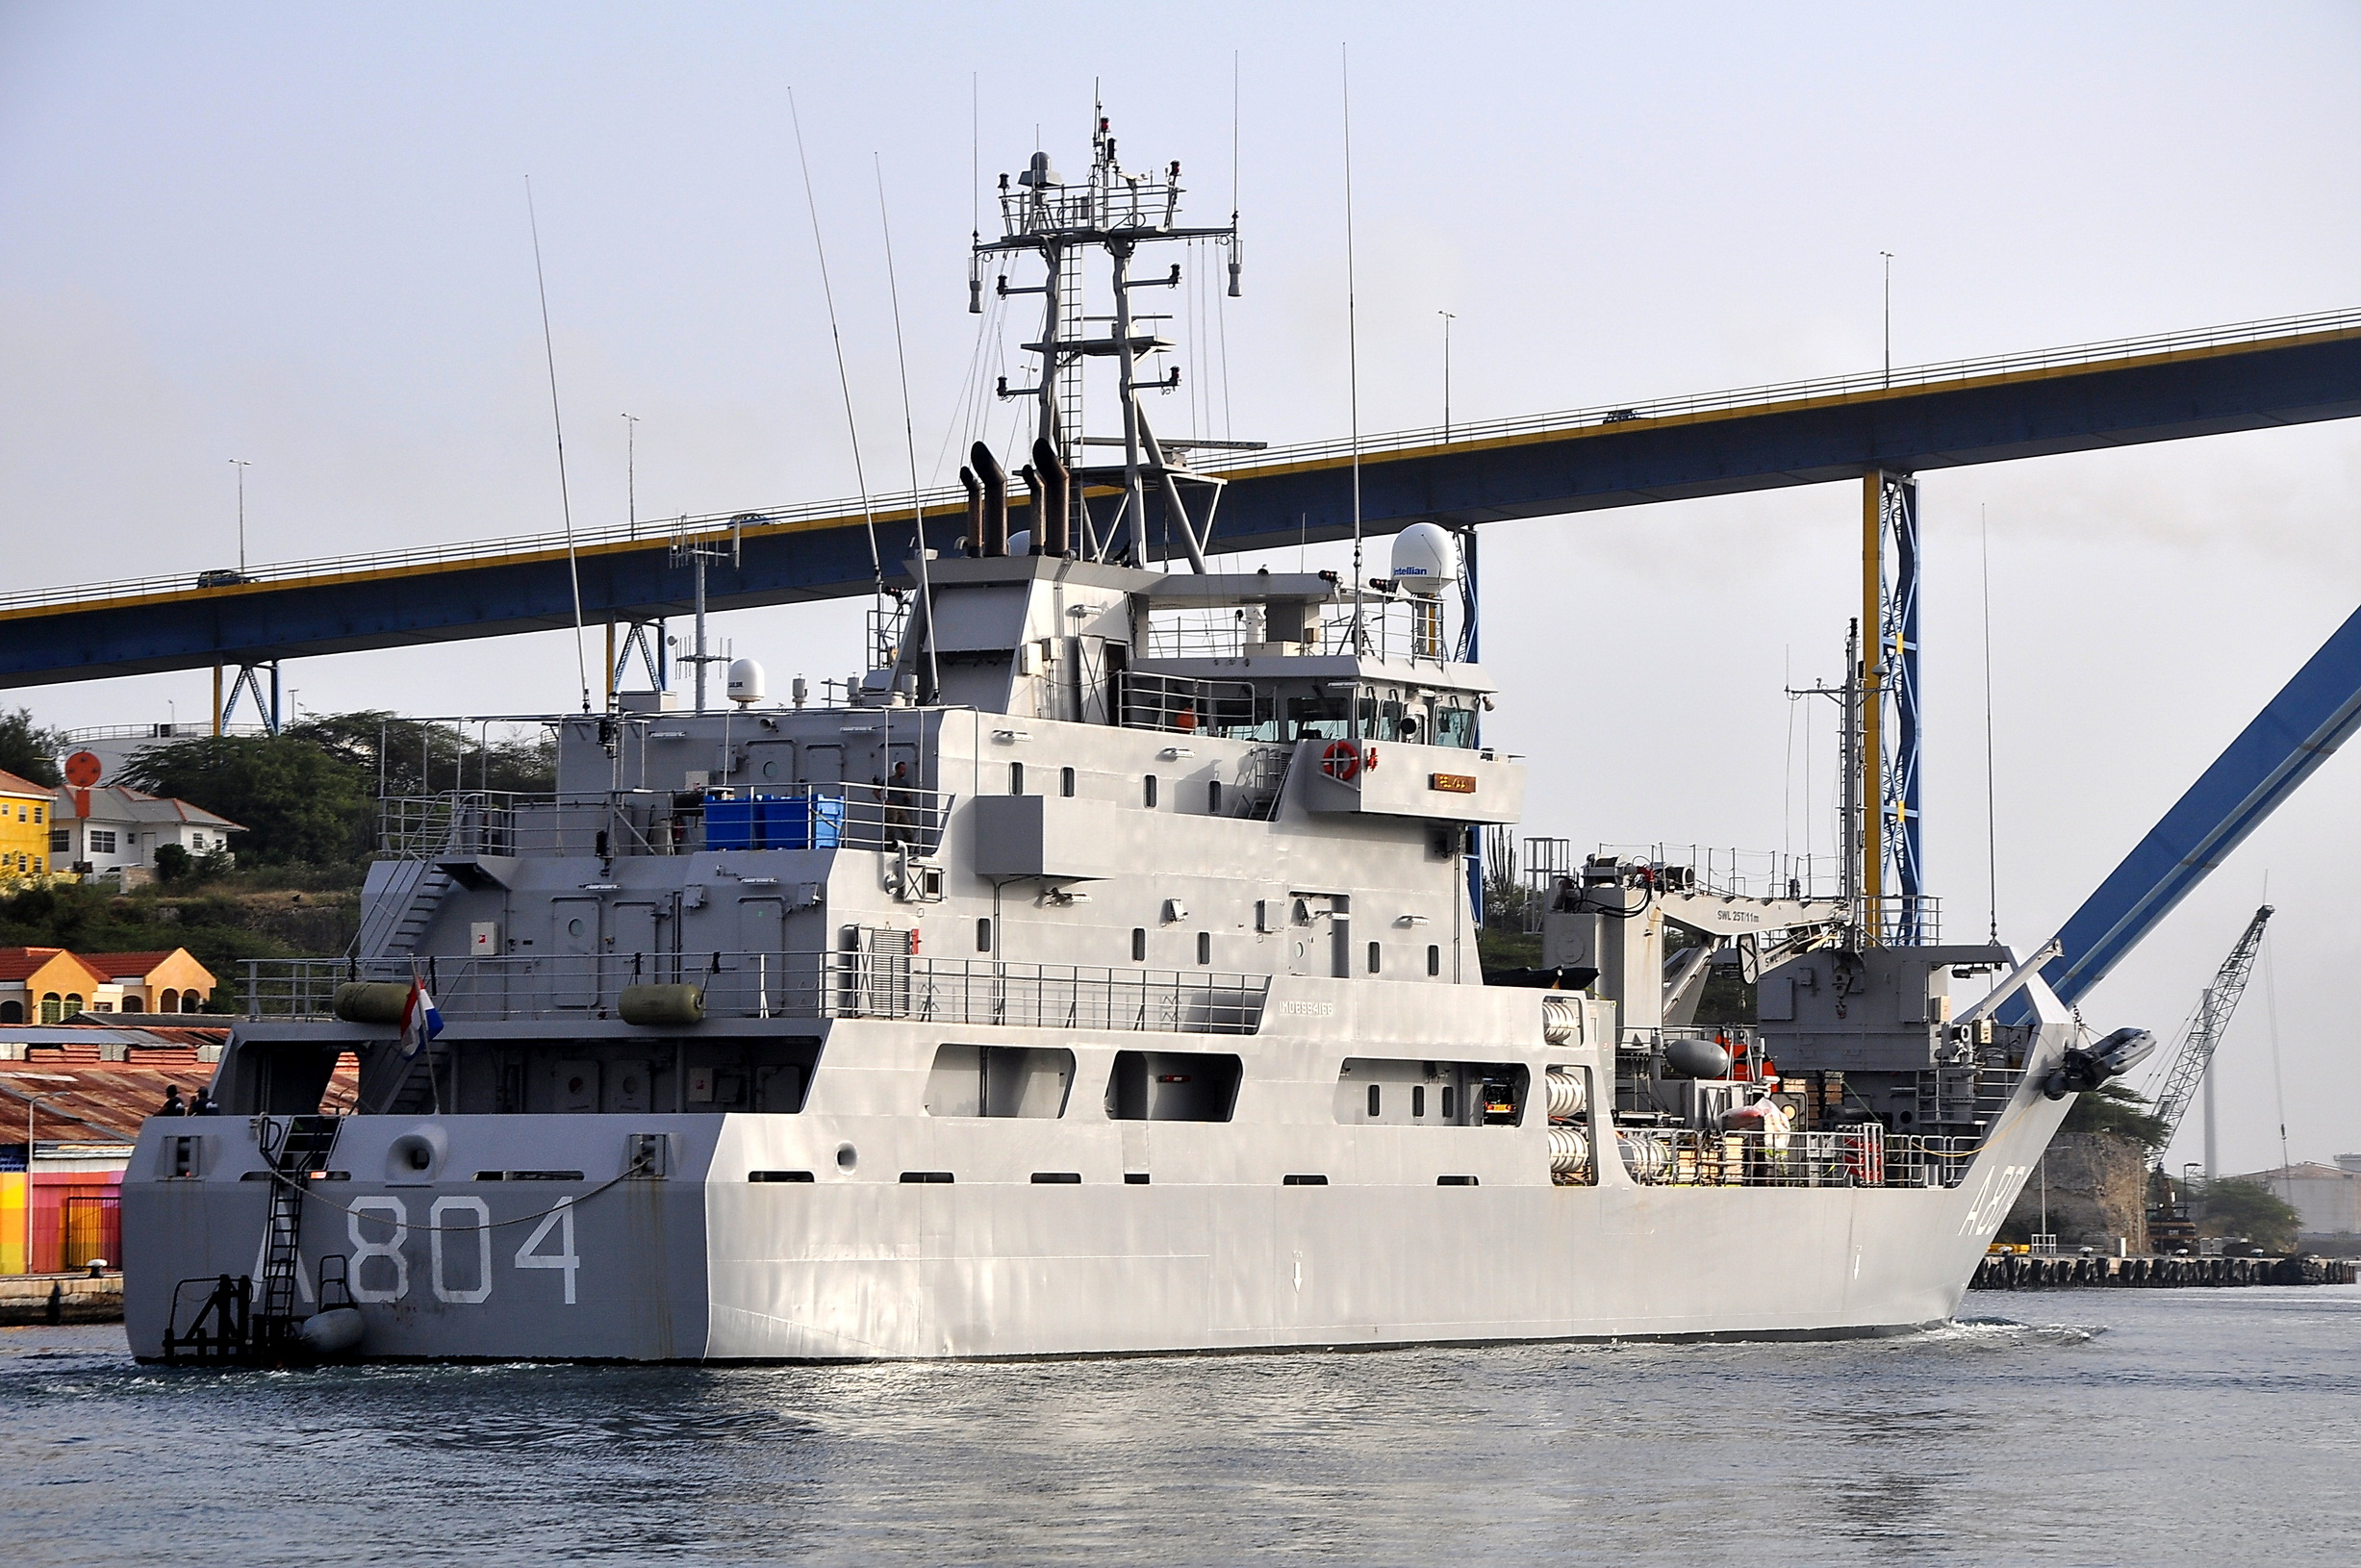 Logistic support vessel HNLMS Pelikaan (A804) 2669751